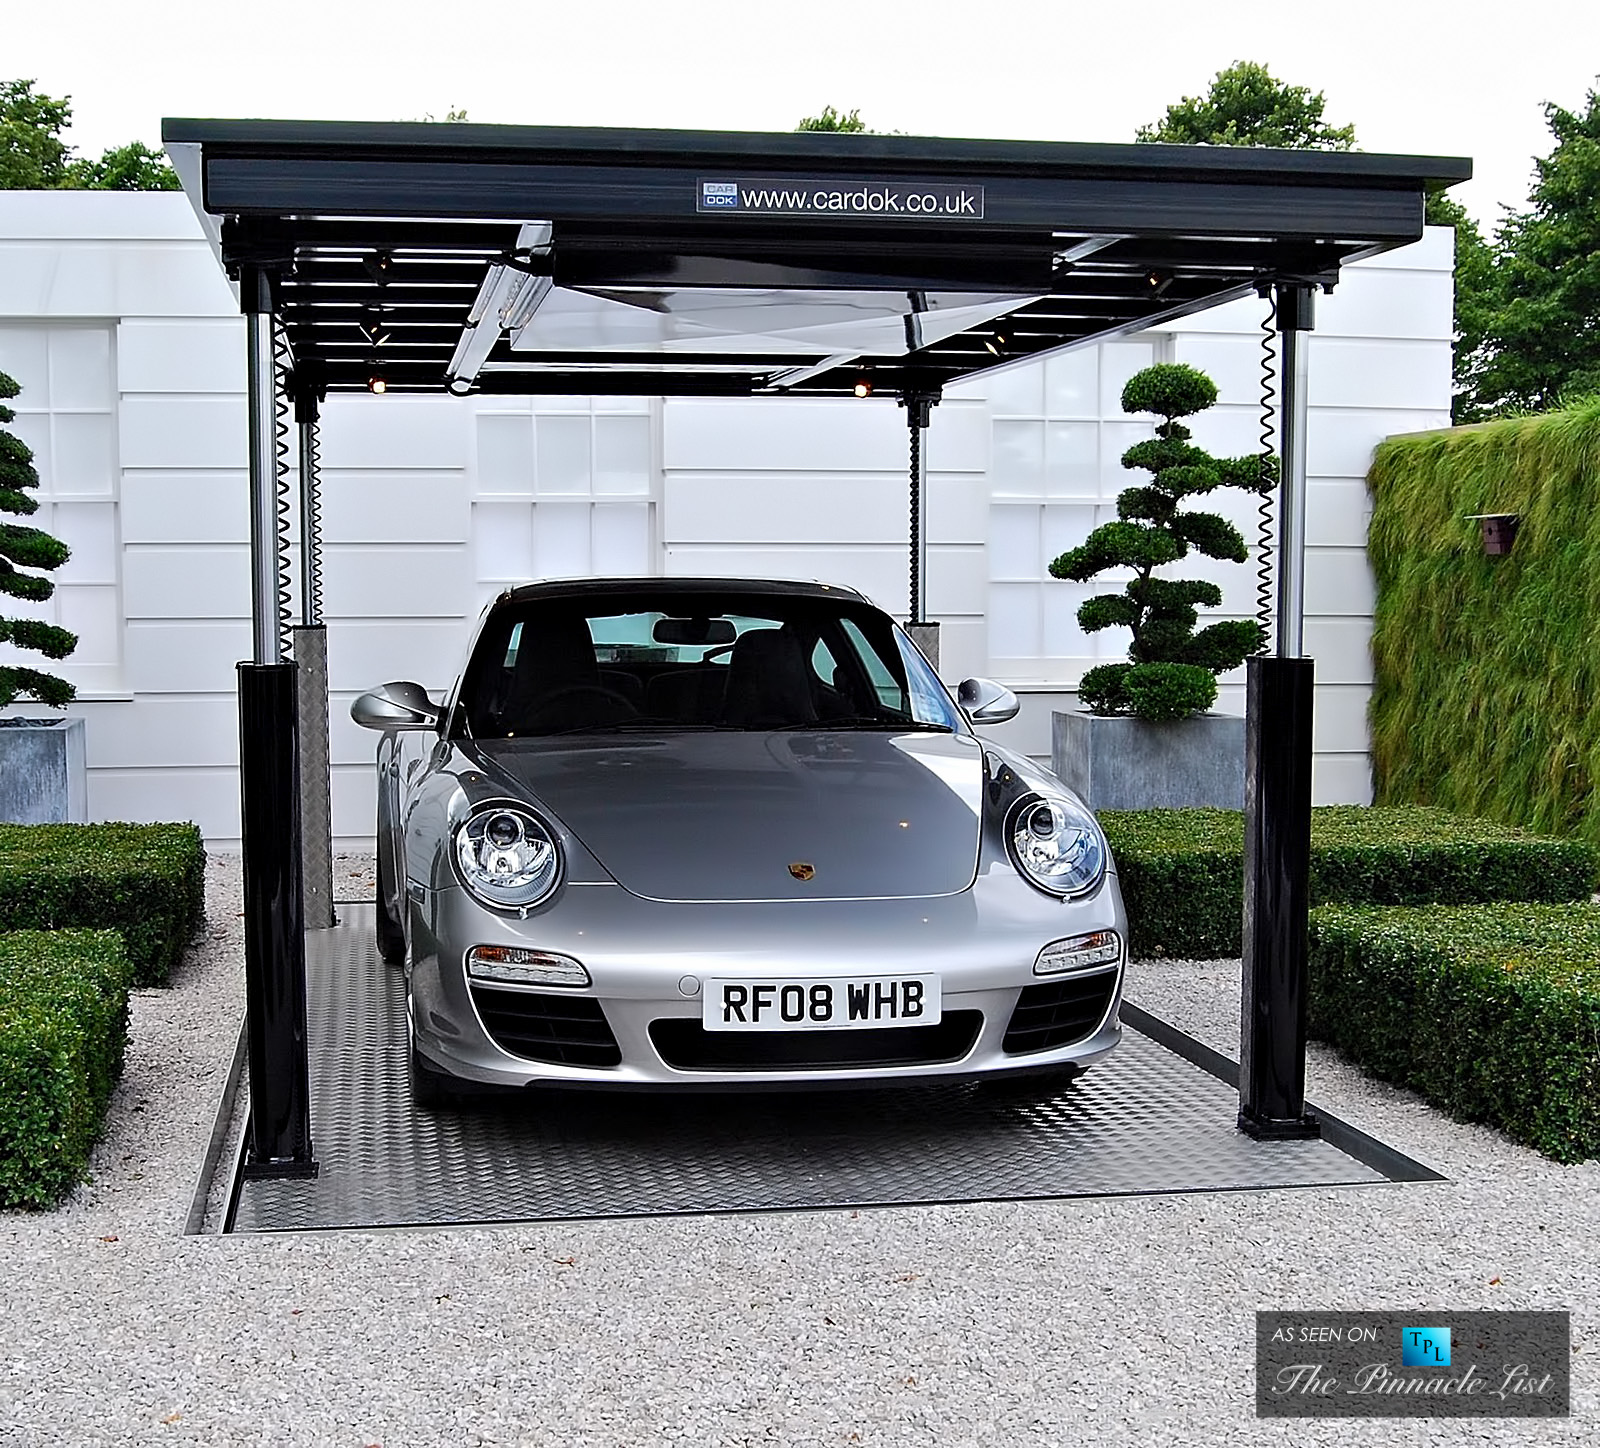 Cardok Underground Garage - The Ultimate Urban Solution for Secure Luxury Car Parking and Storage